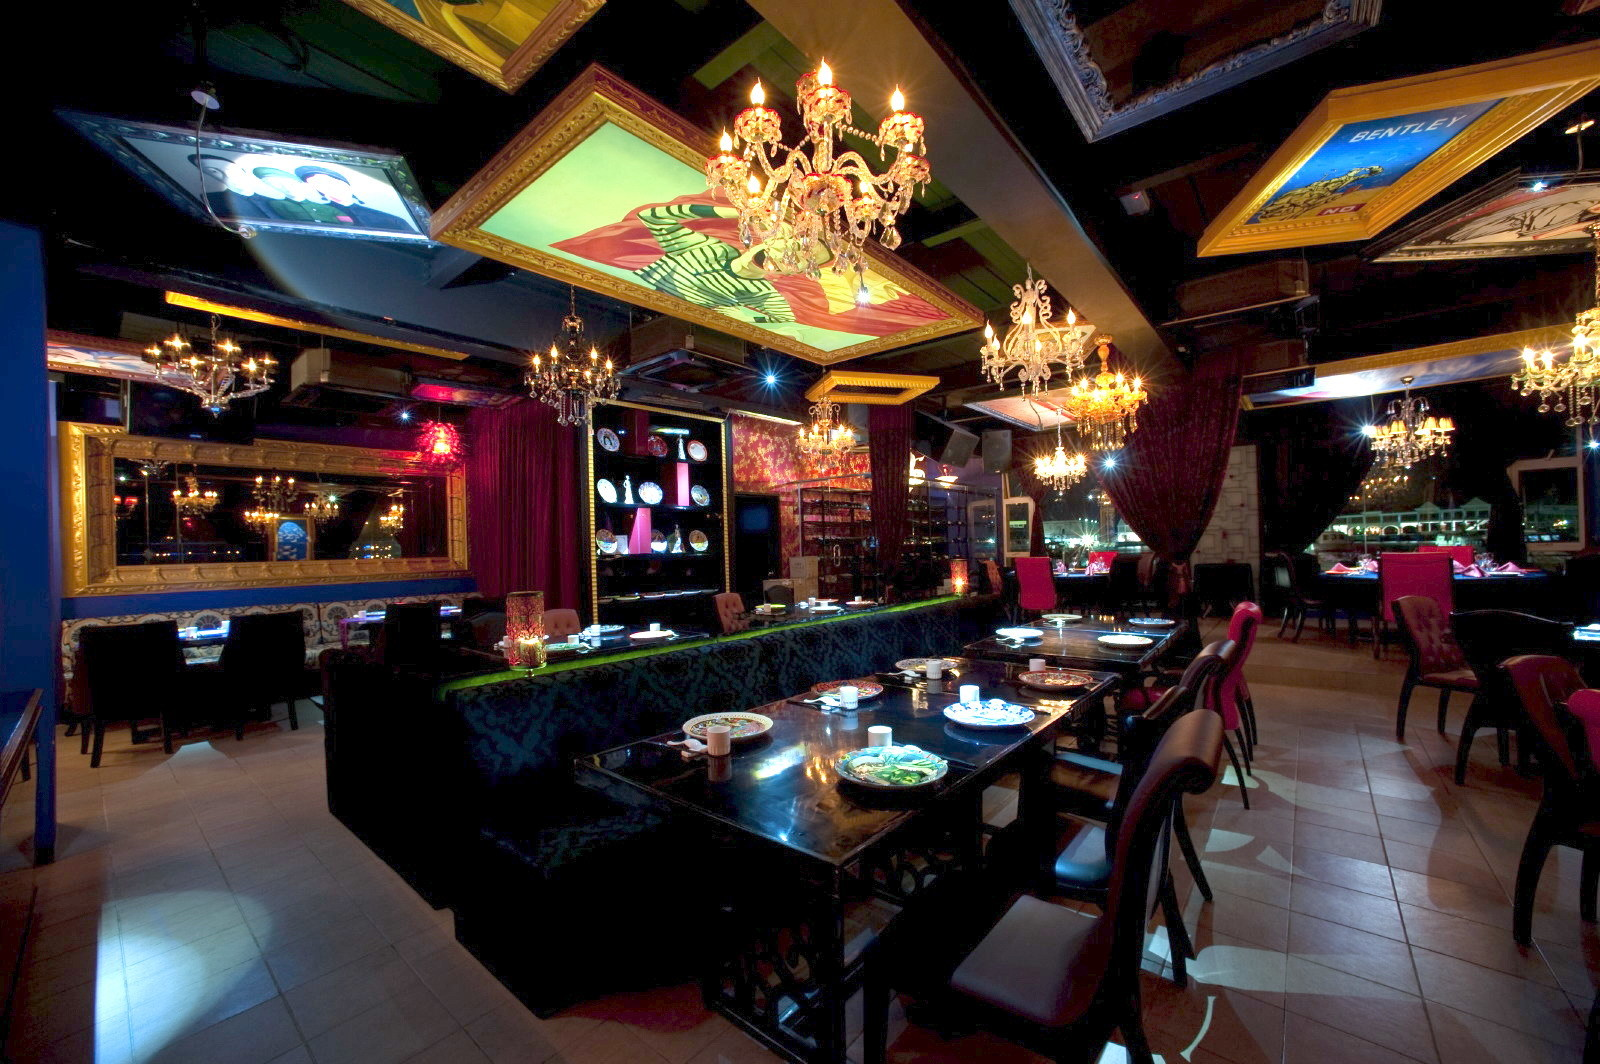 Chin's Stylish Chinese Cuisine